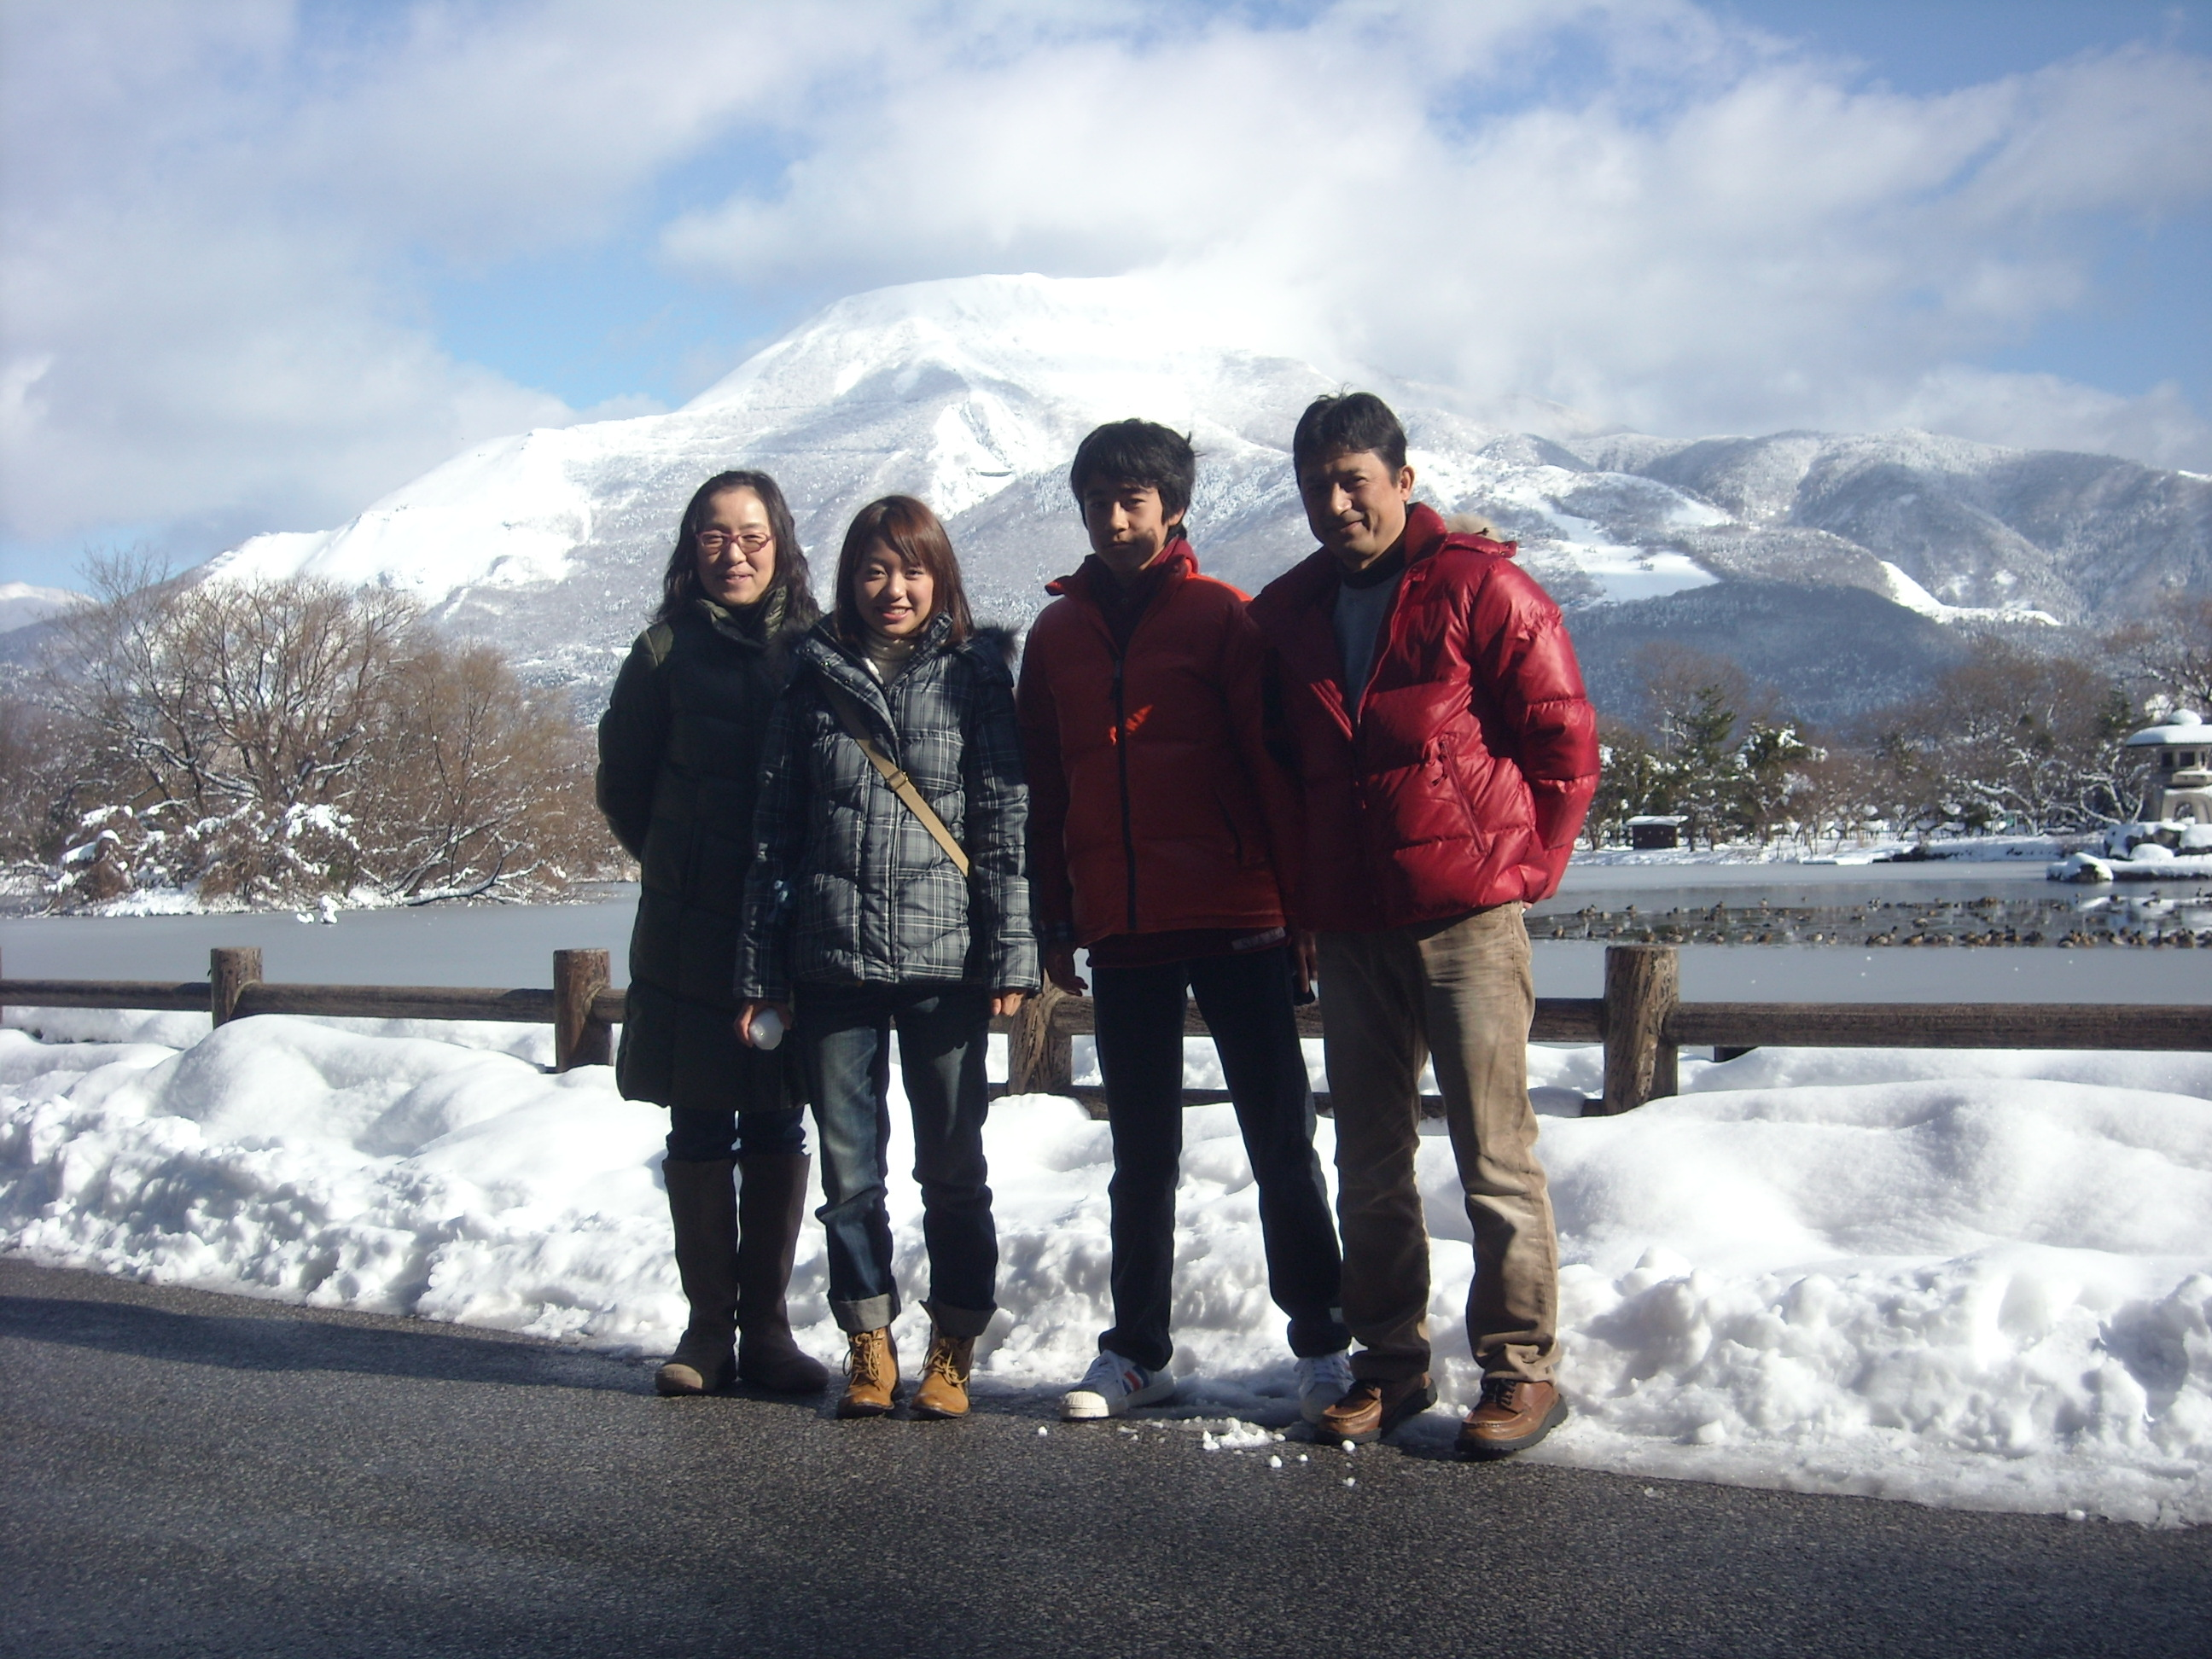 A family photo from a New Year's trip, taken in Maibara city, Shiga. Photo courtesy: Mizuki Ogi